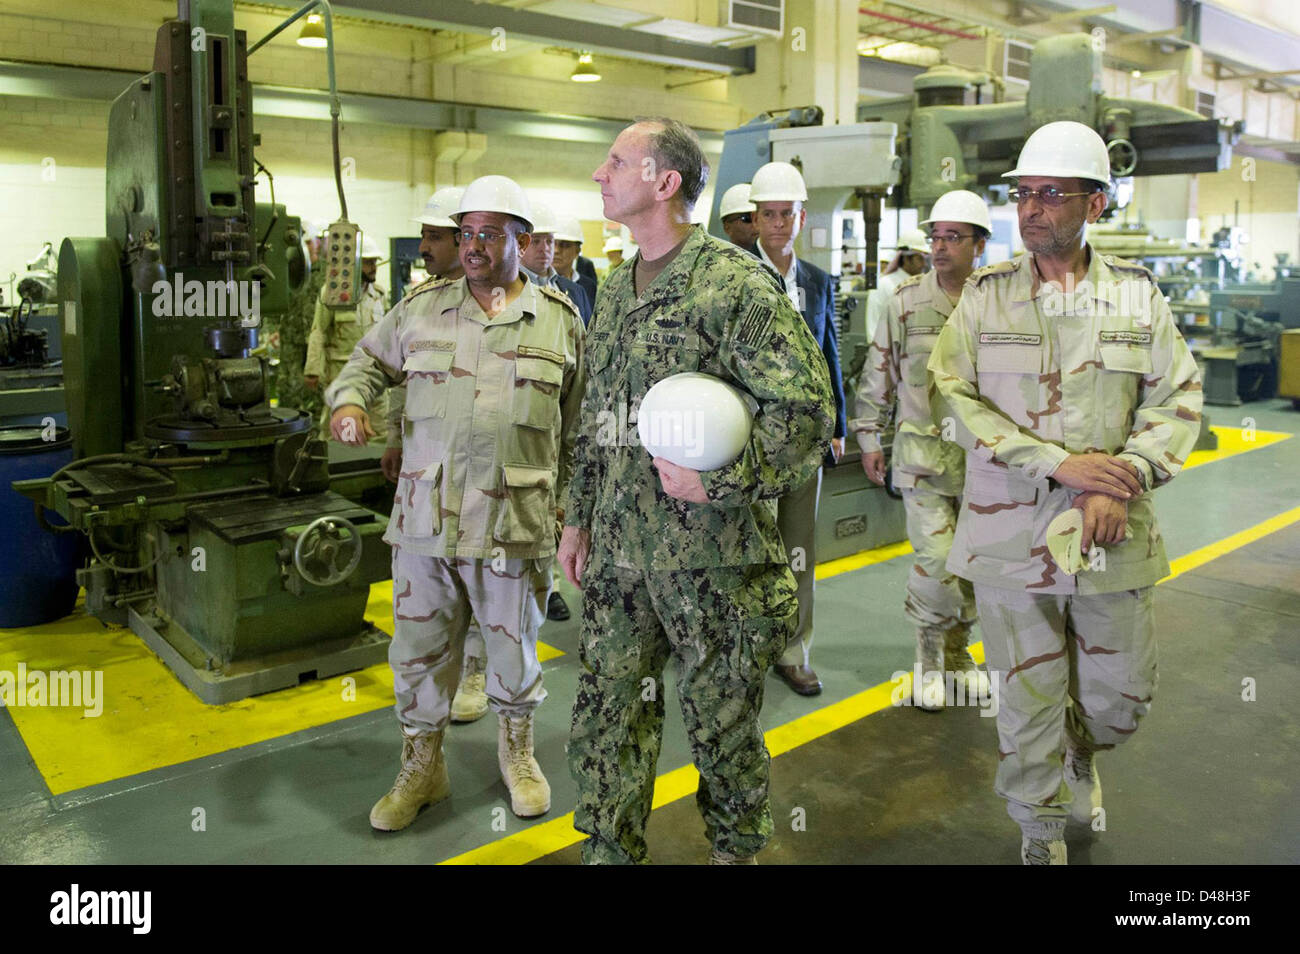 CNO Adm. Greenert tours King Abdulaziz Naval Base. - Stock Image